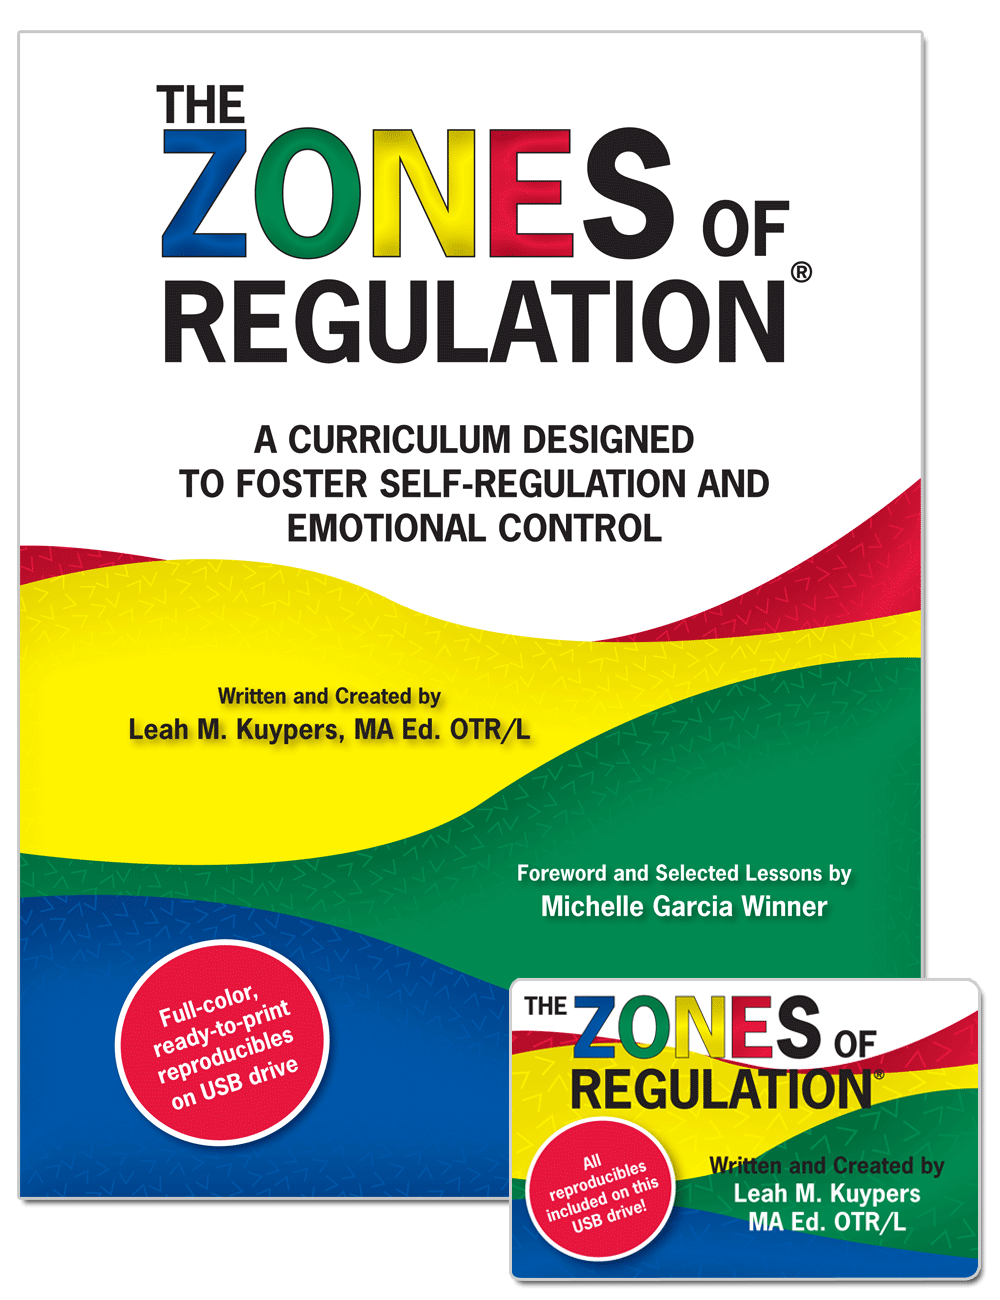 The Zones of Regulation